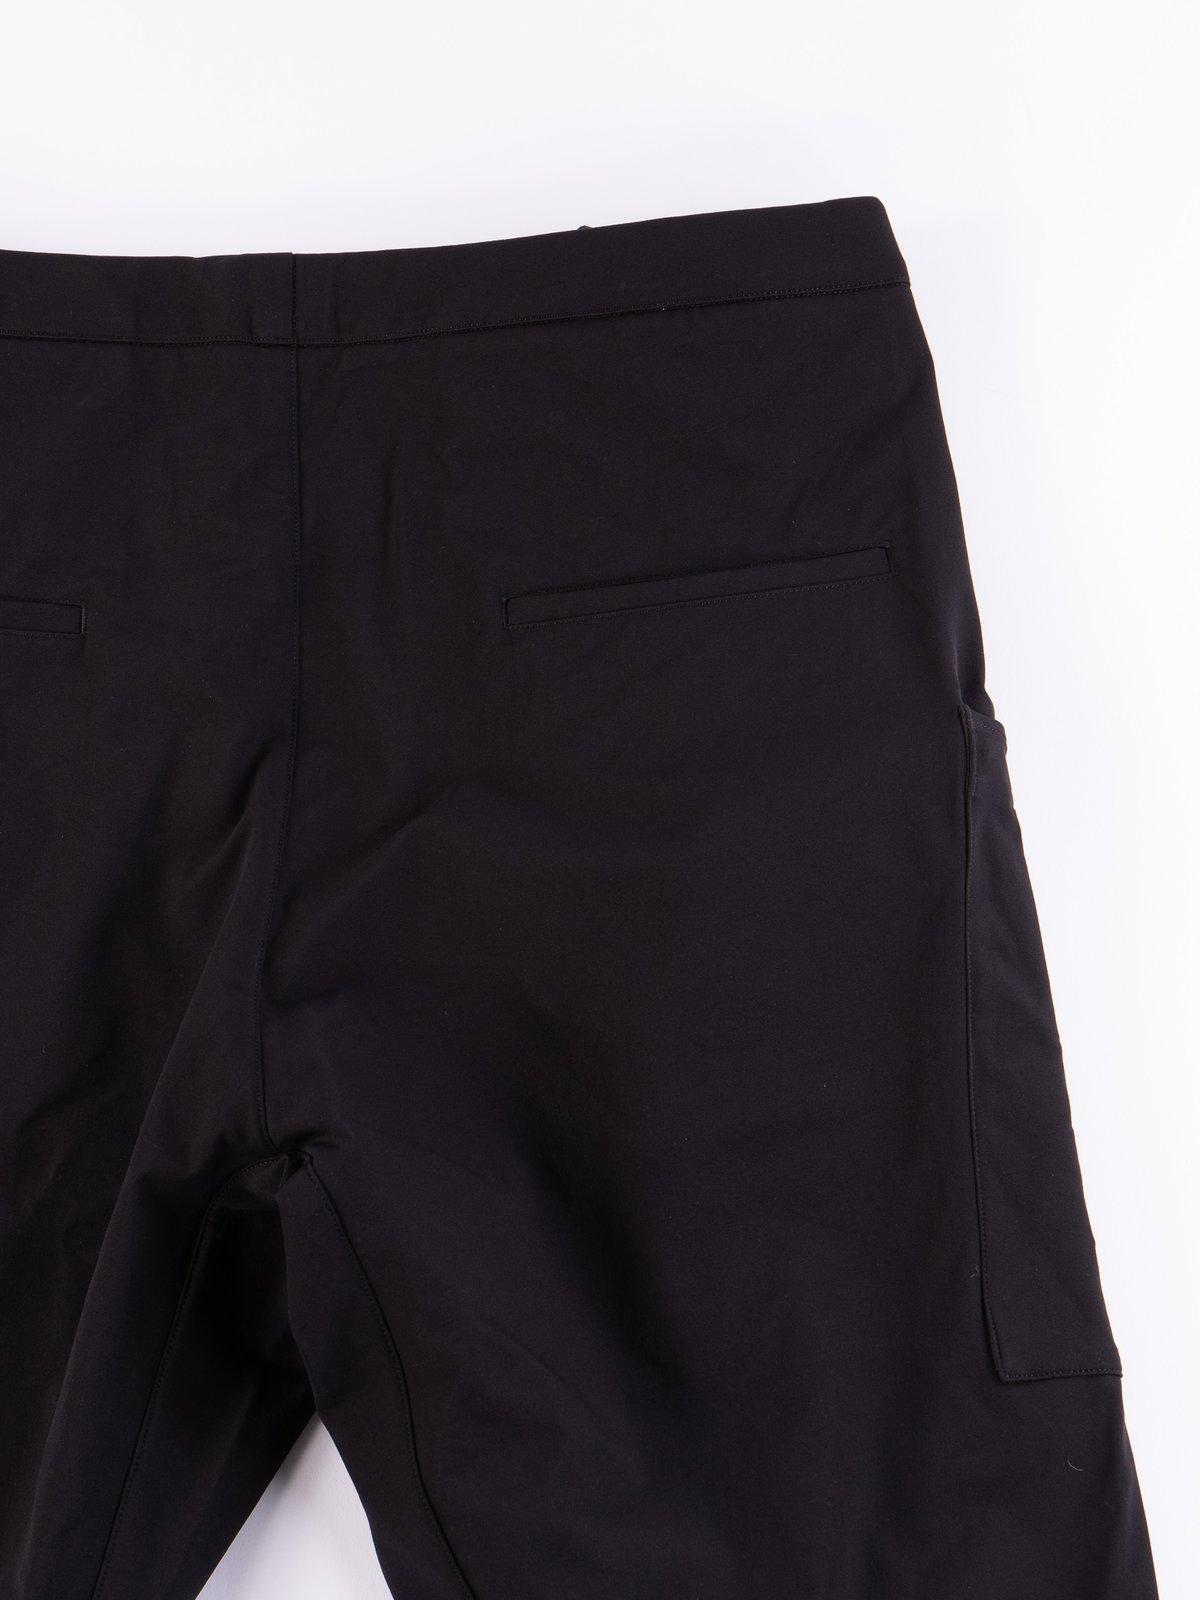 P31A–DS Black Schoeller Dryskin Drawcord Cargo Trouser - Image 4